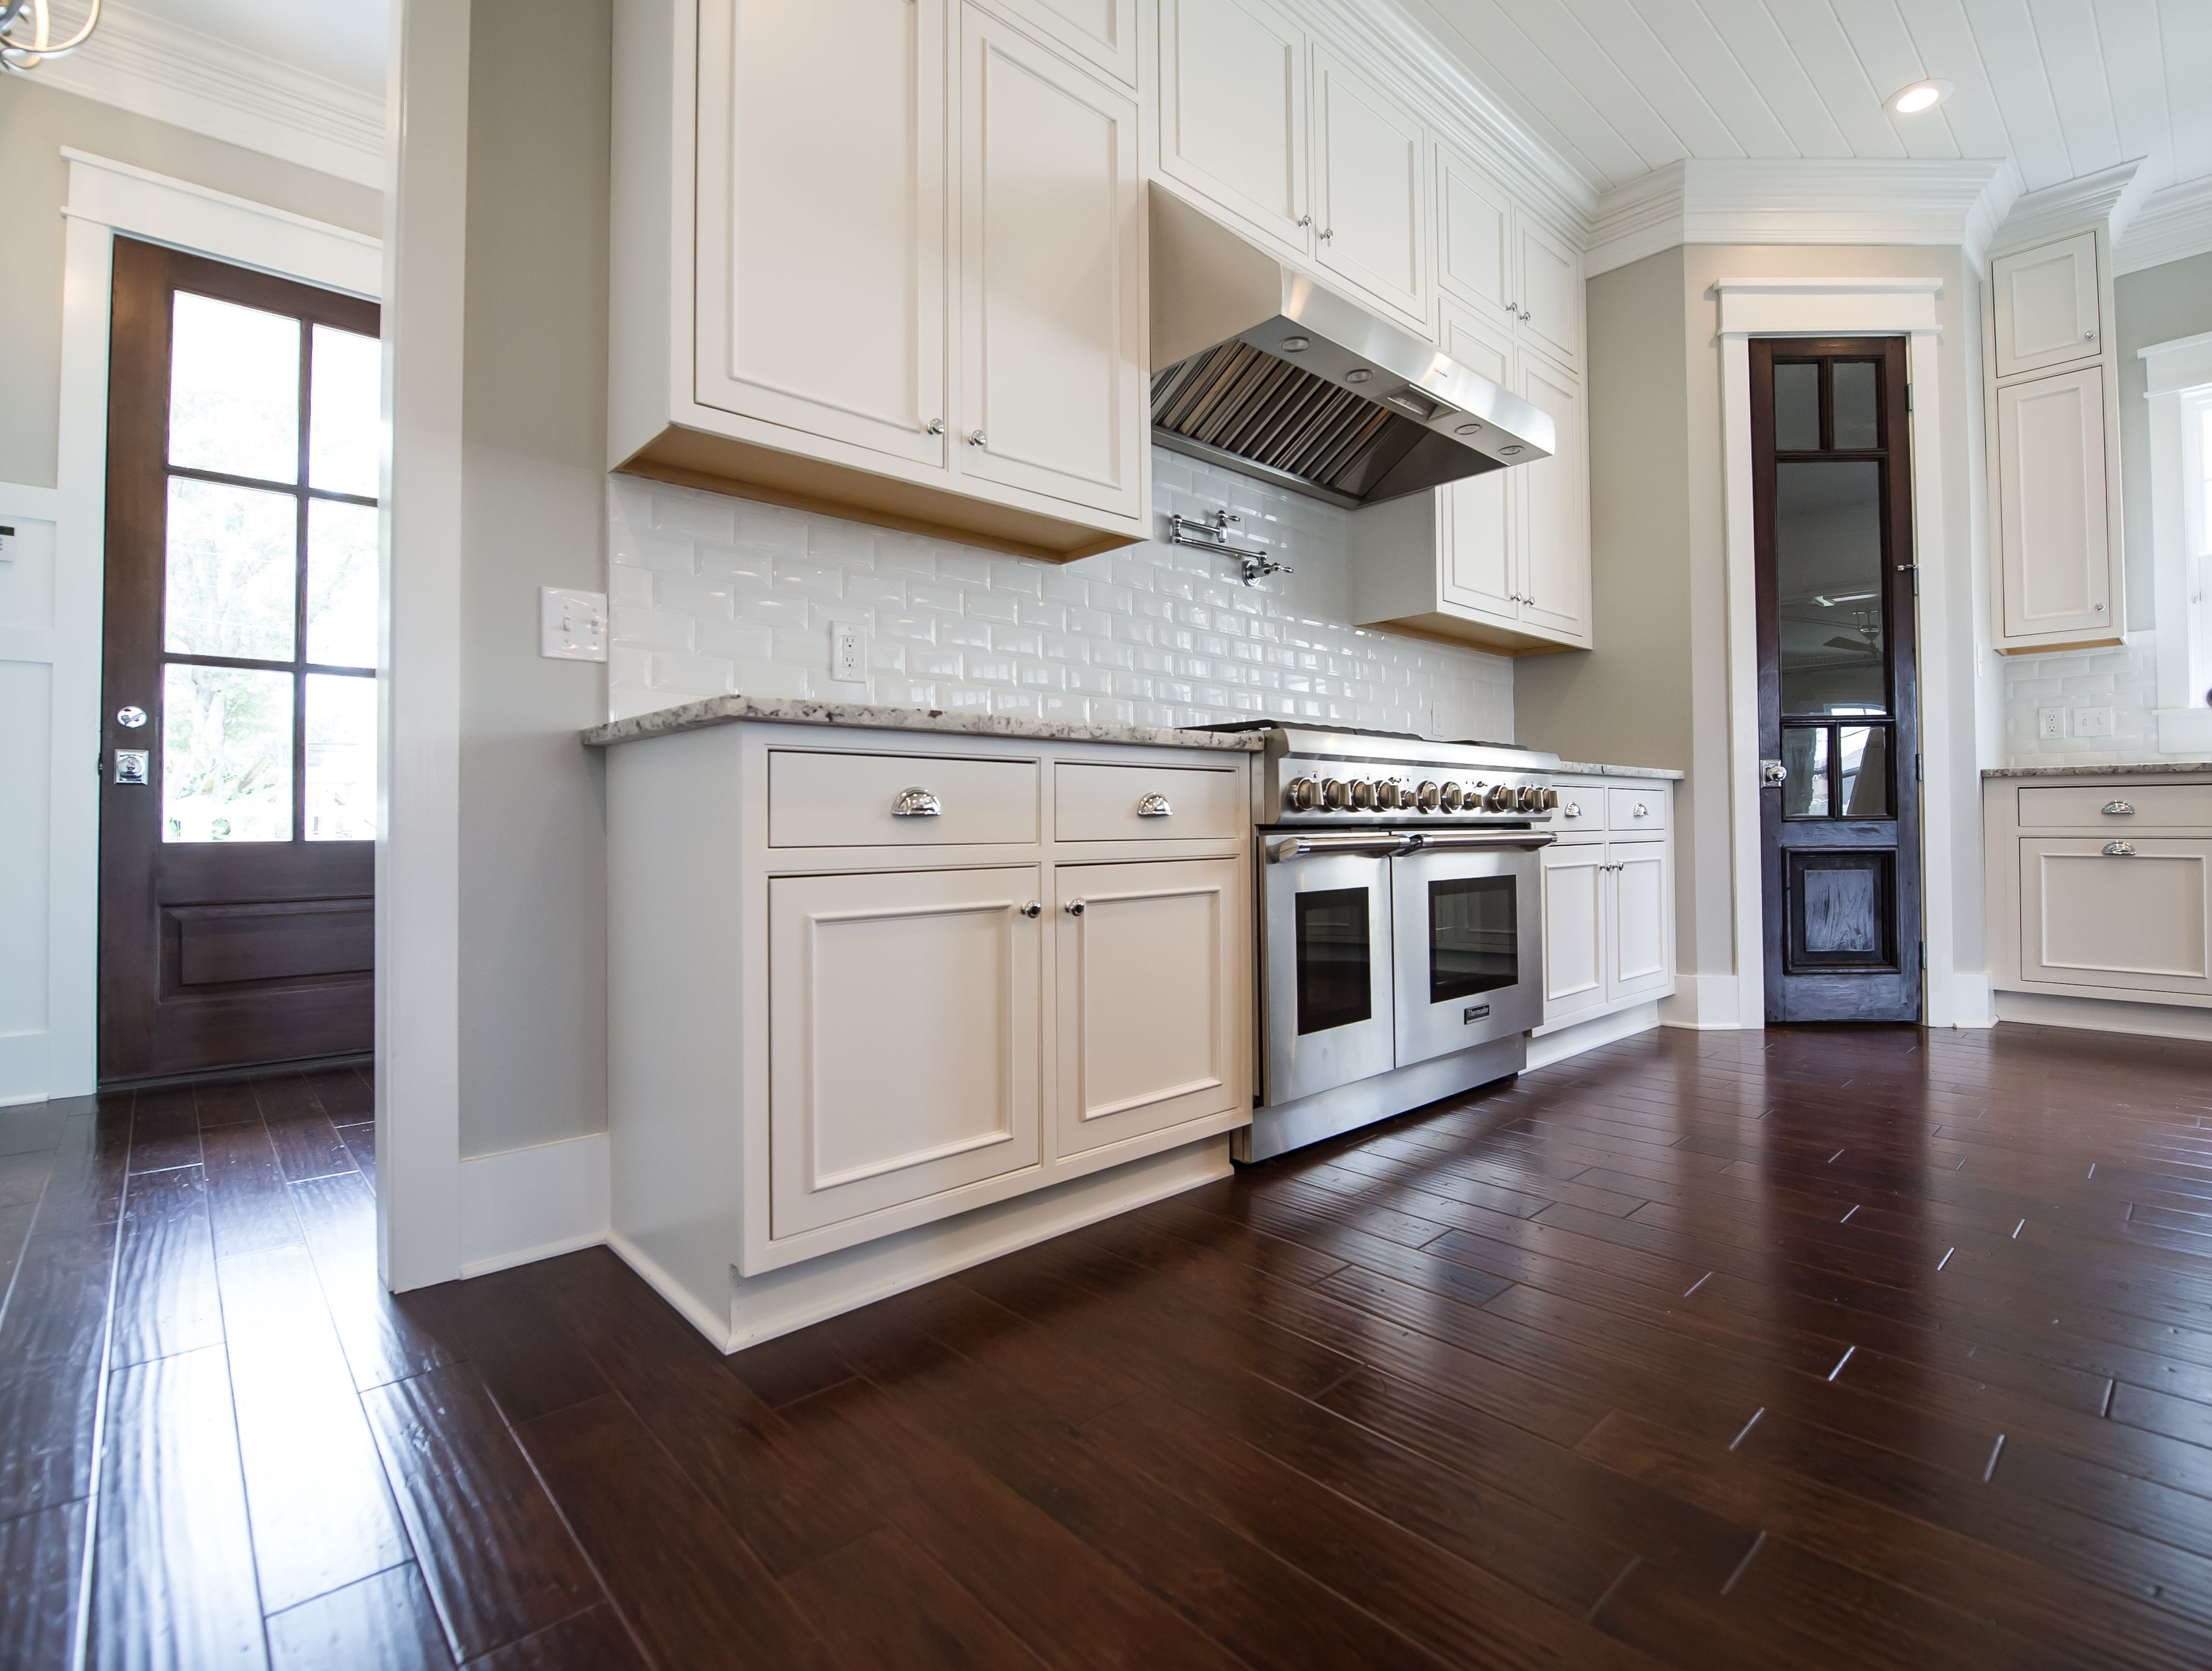 Kitchen with tongue and groove ceiling reclaimed cypress pantry kitchen with tongue and groove ceiling reclaimed cypress pantry door professional grade appliances subway tile dailygadgetfo Images